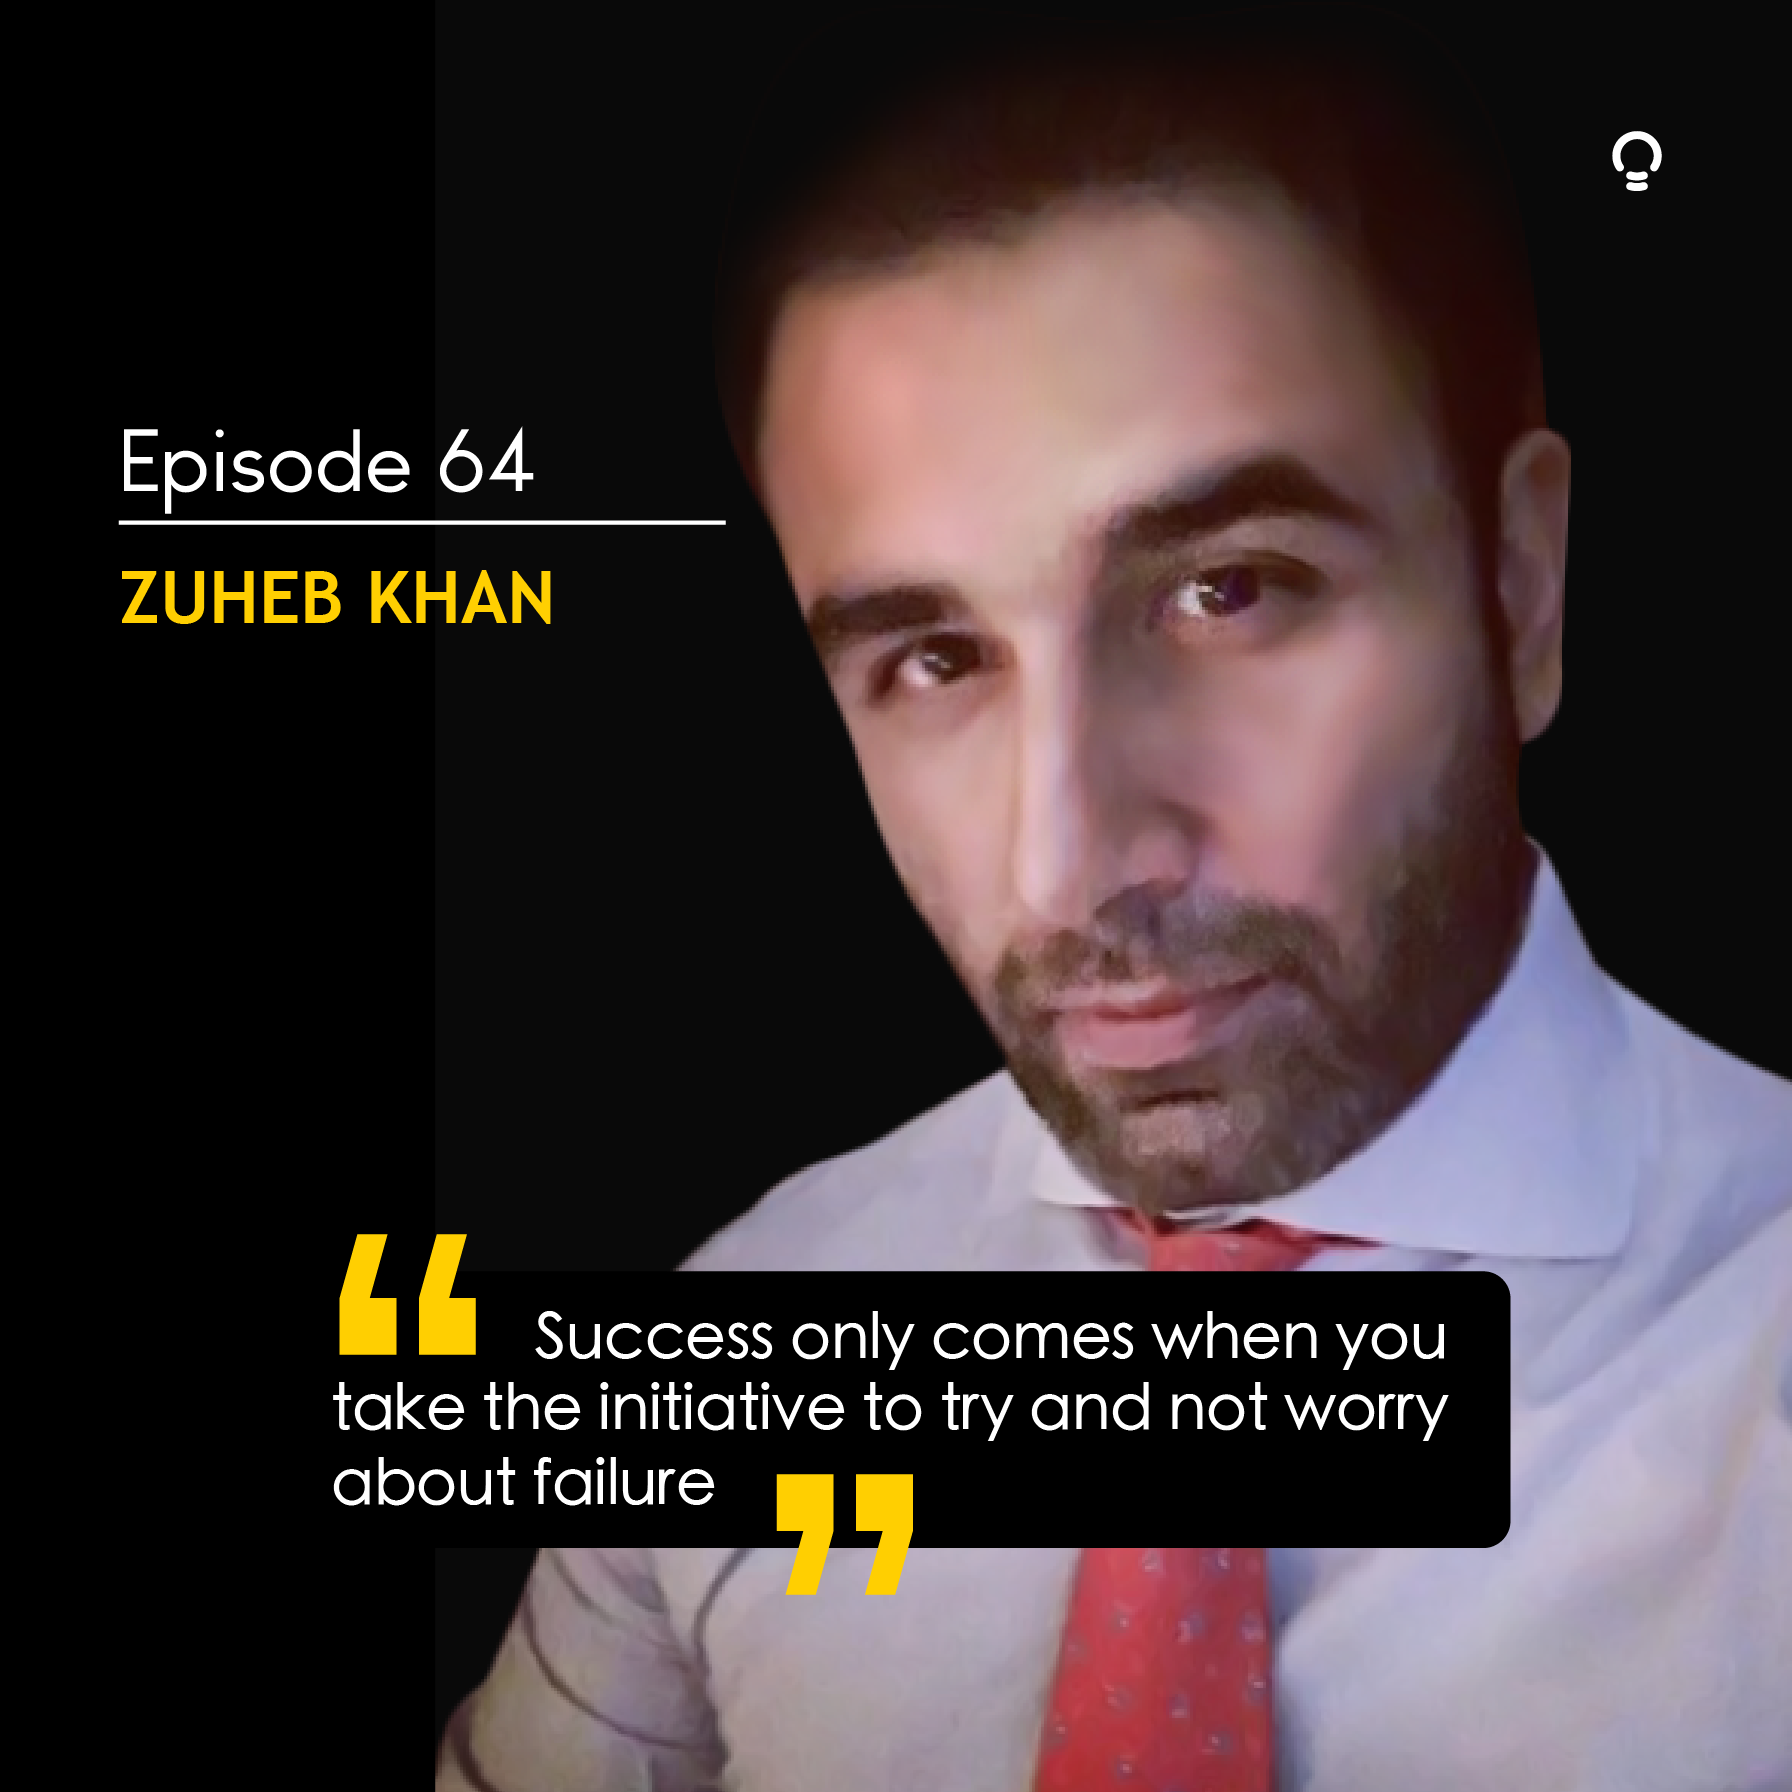 Top Indian Entrepreneurs -Zuheb Khan